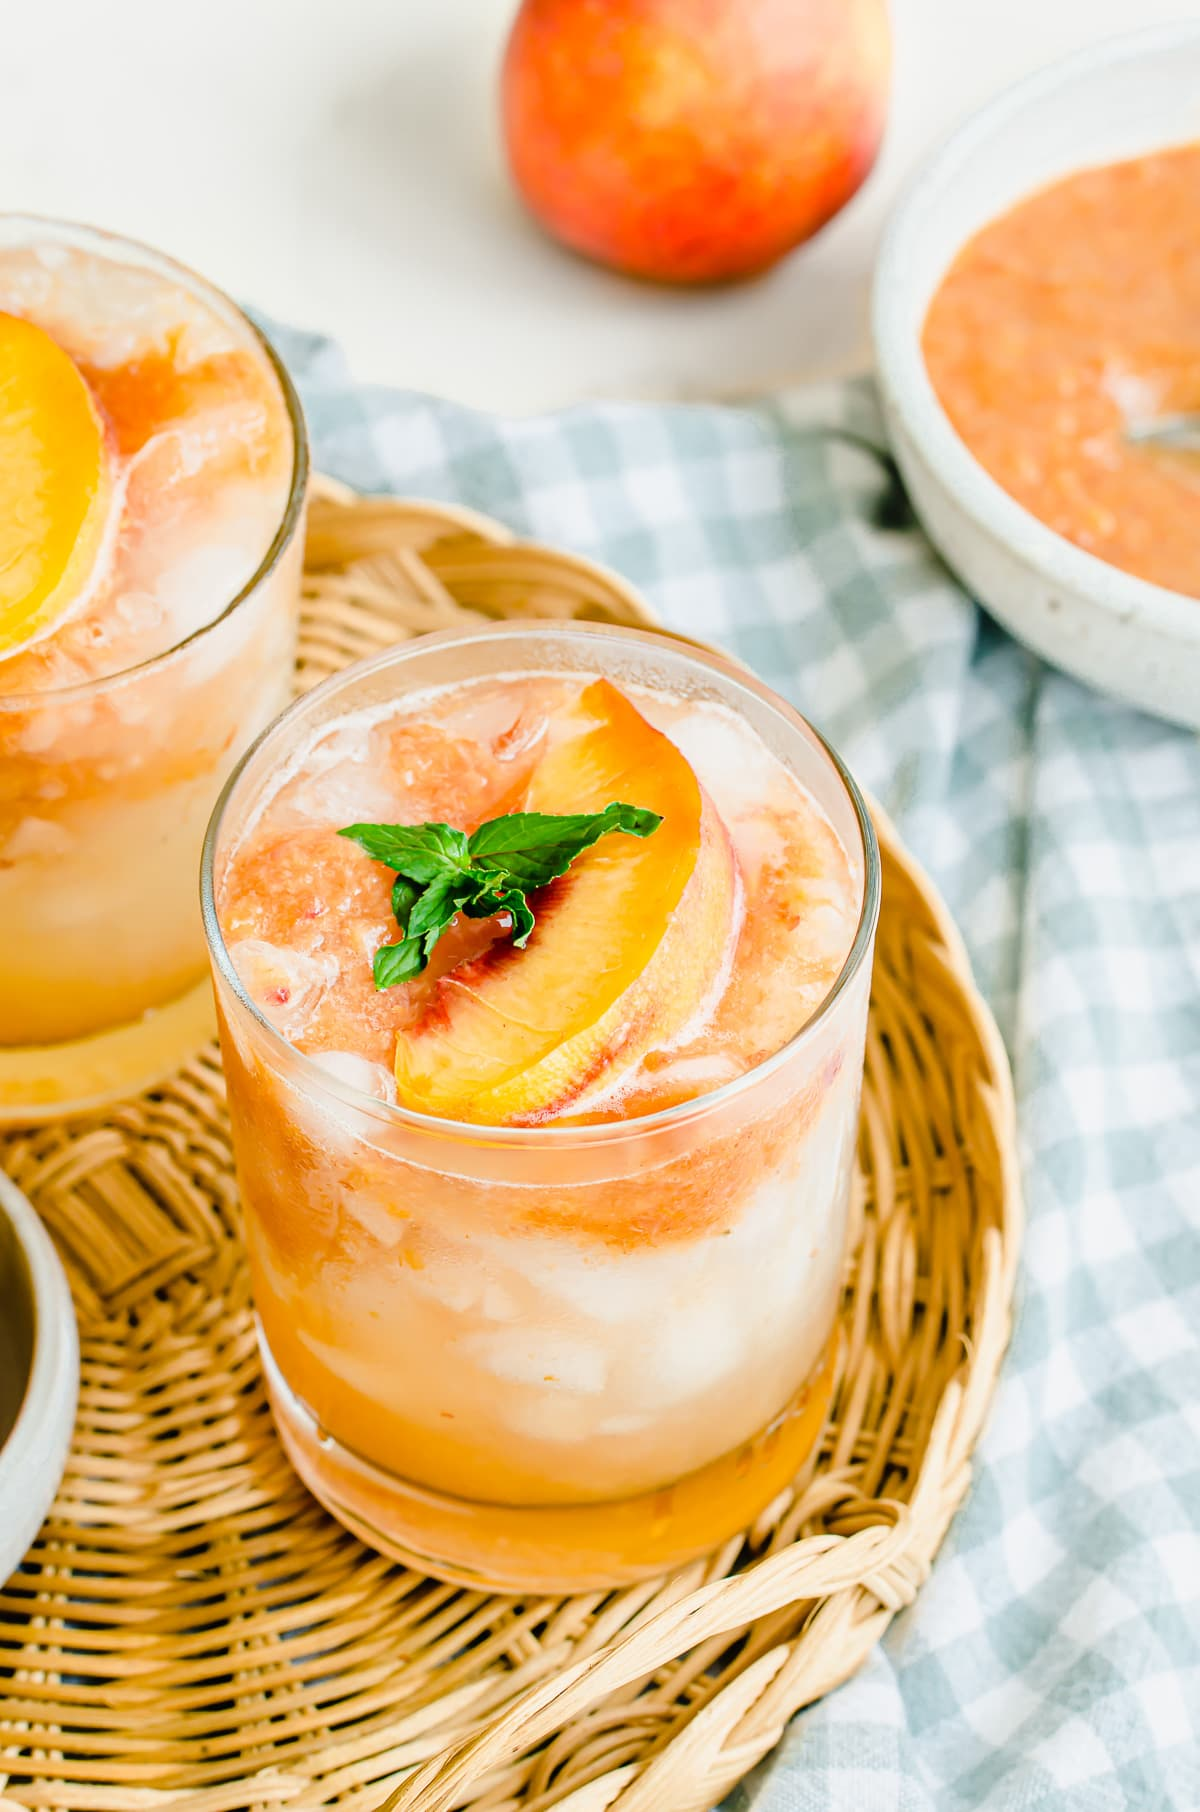 Two glasses of lemonade garnished with peaches on a wicker serving tray and a bowl of peach puree on the side.